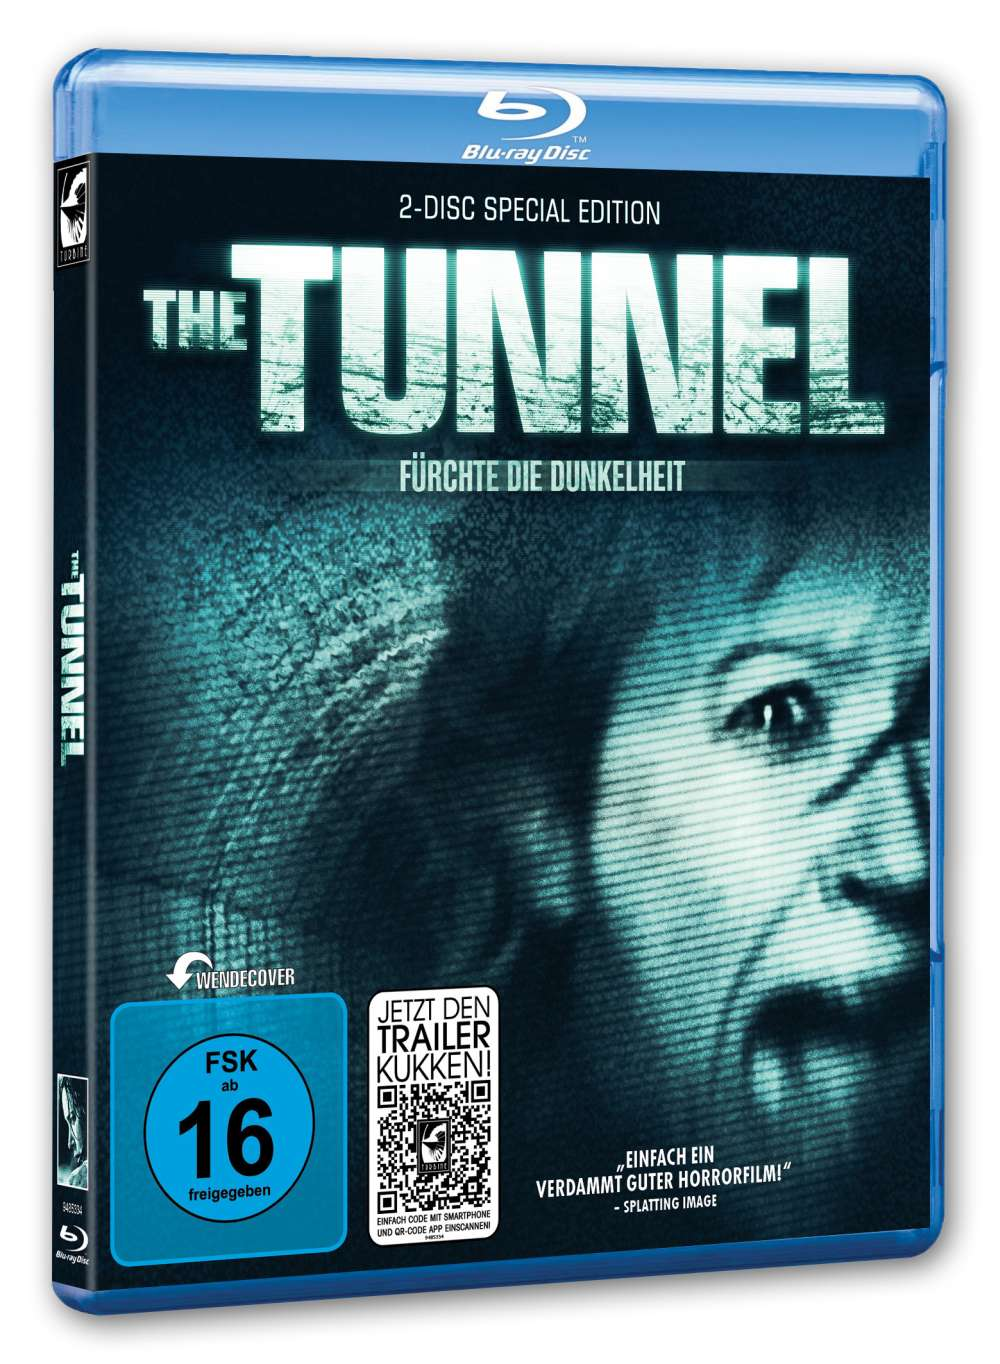 The Tunnel Fürchte Die Dunkelheit Stream